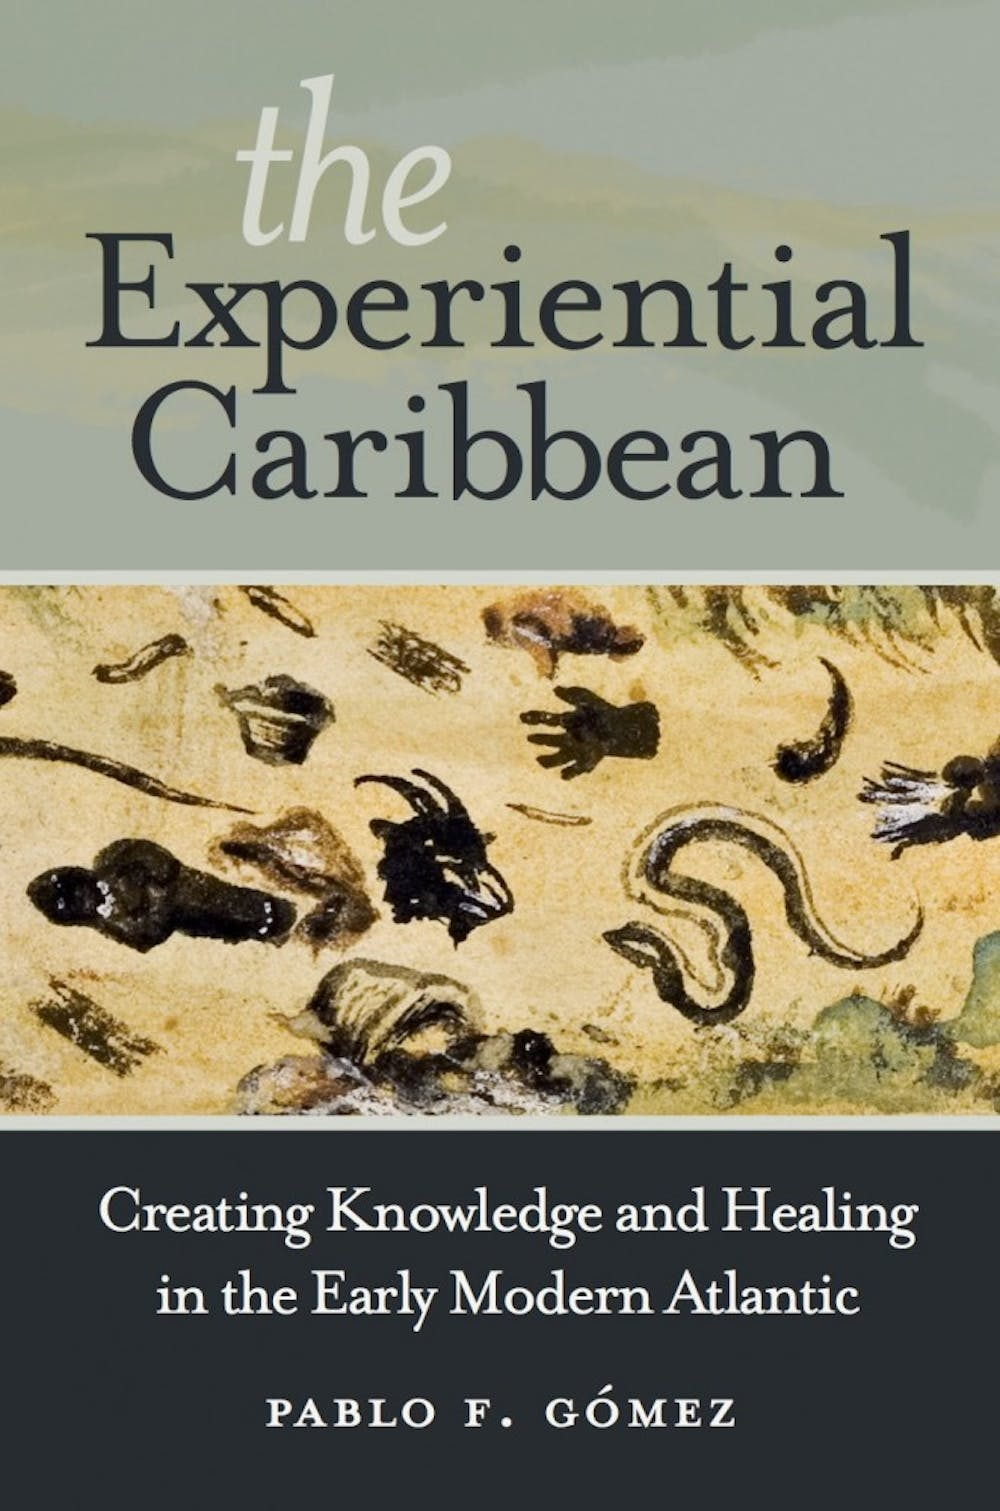 Are you smarter than a 17th-century Caribbean person?